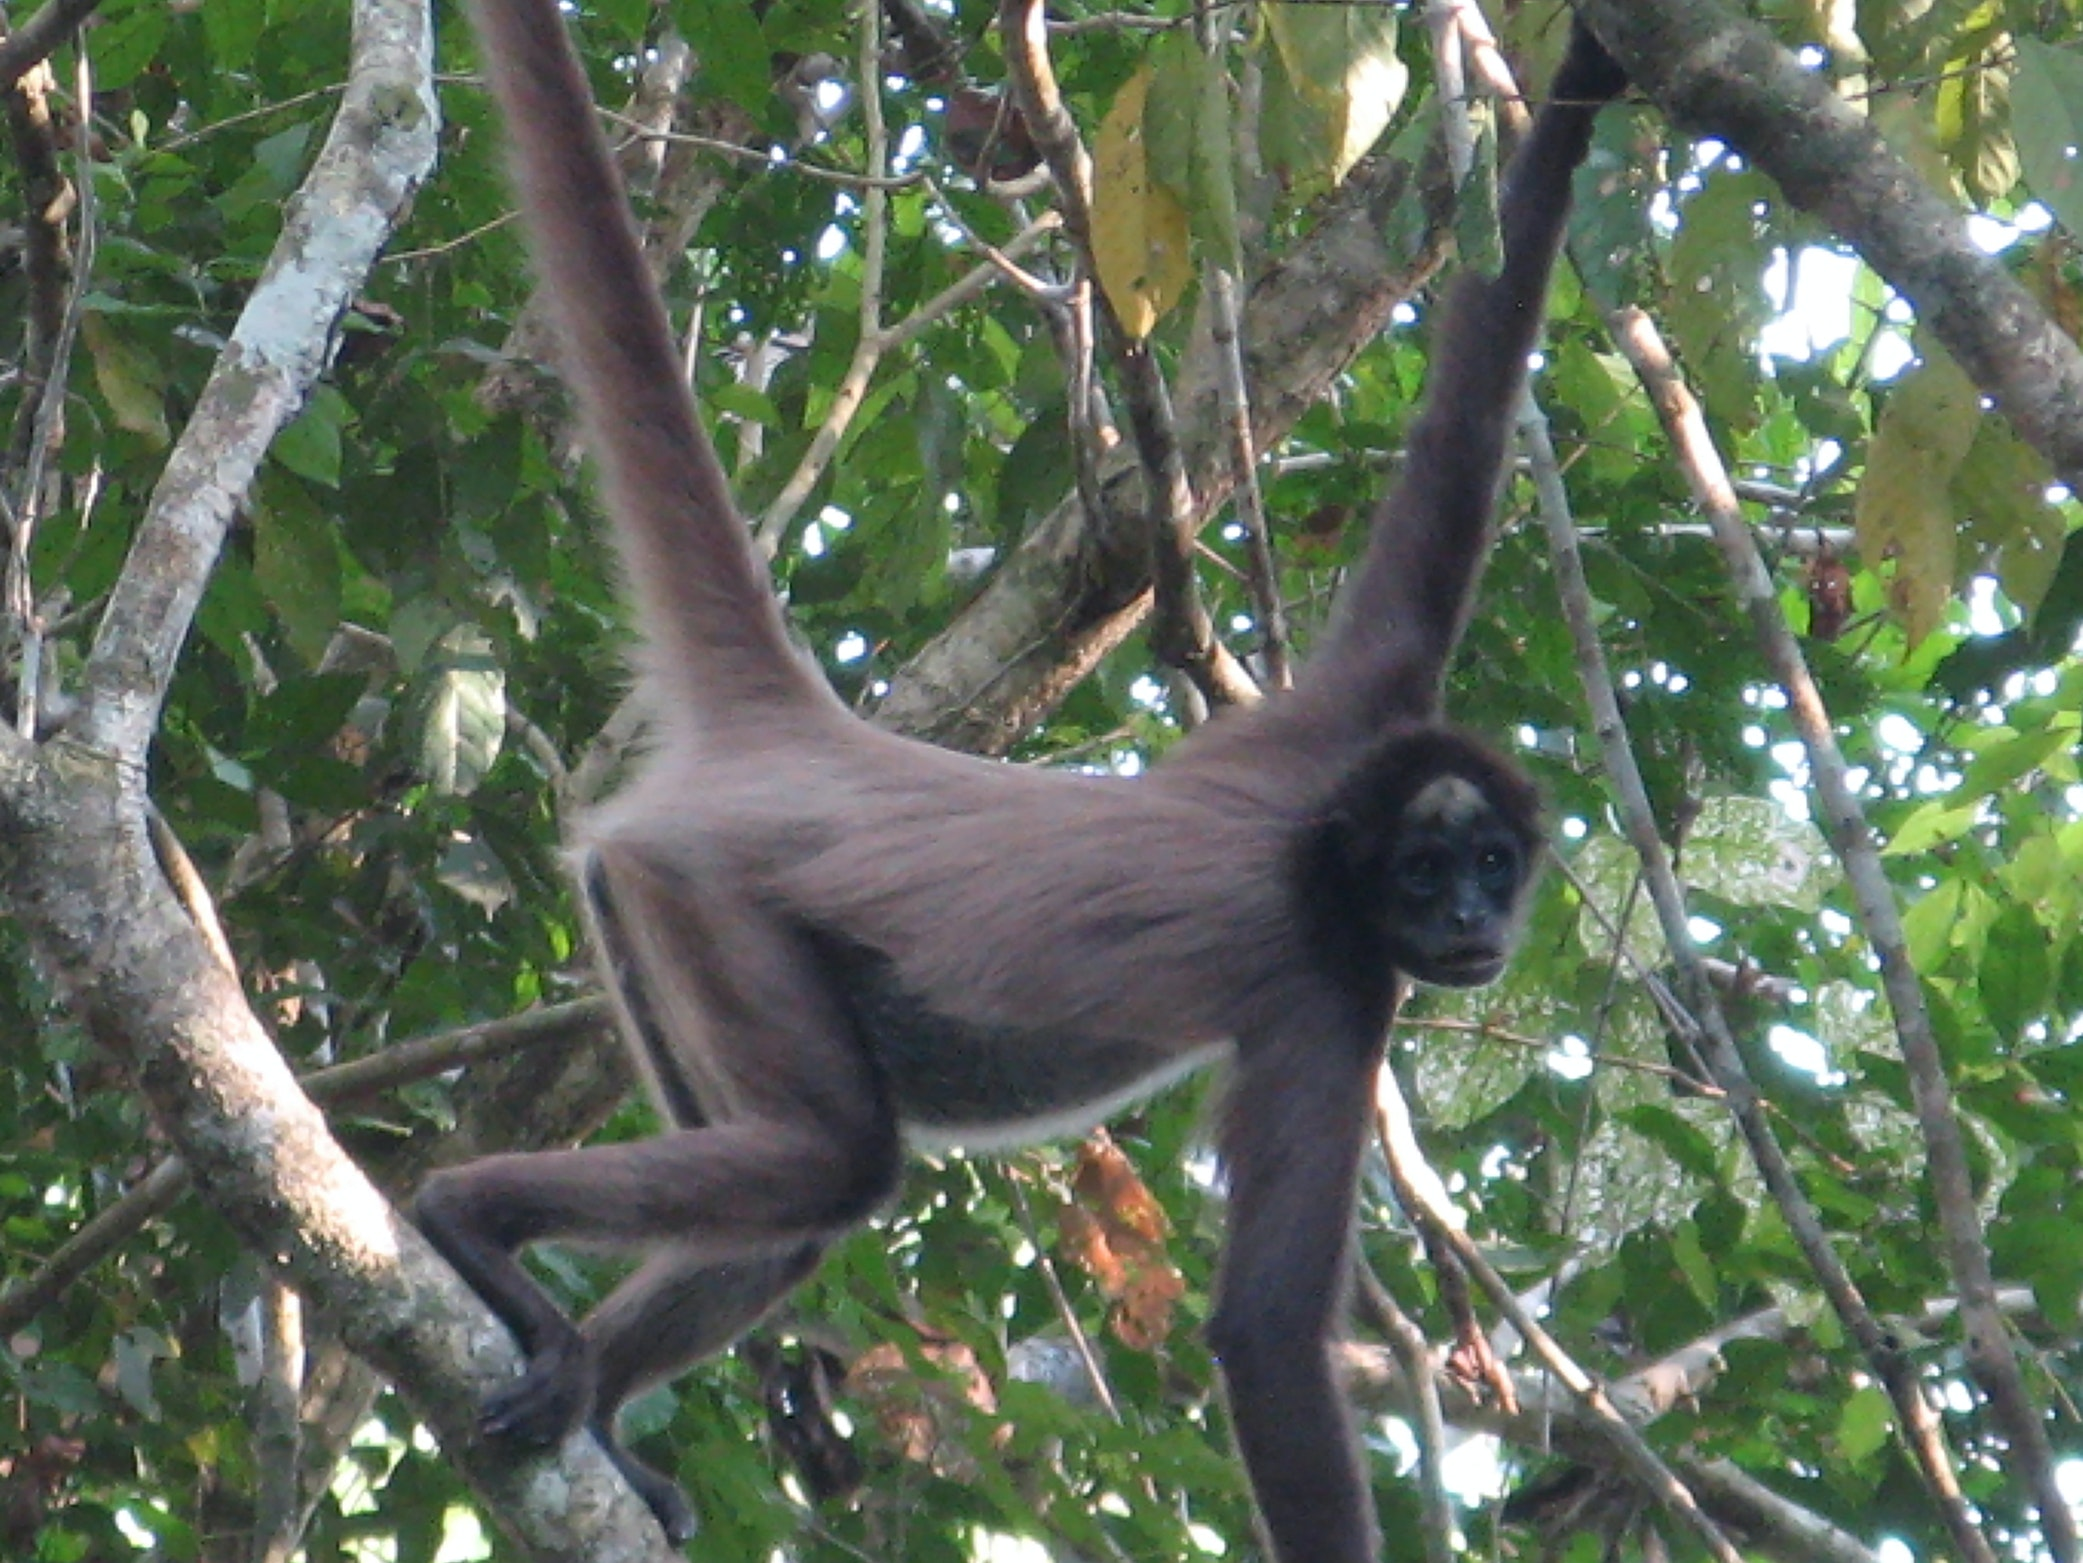 Variegated spider monkeys (Ateles hybridus) in Colombia.